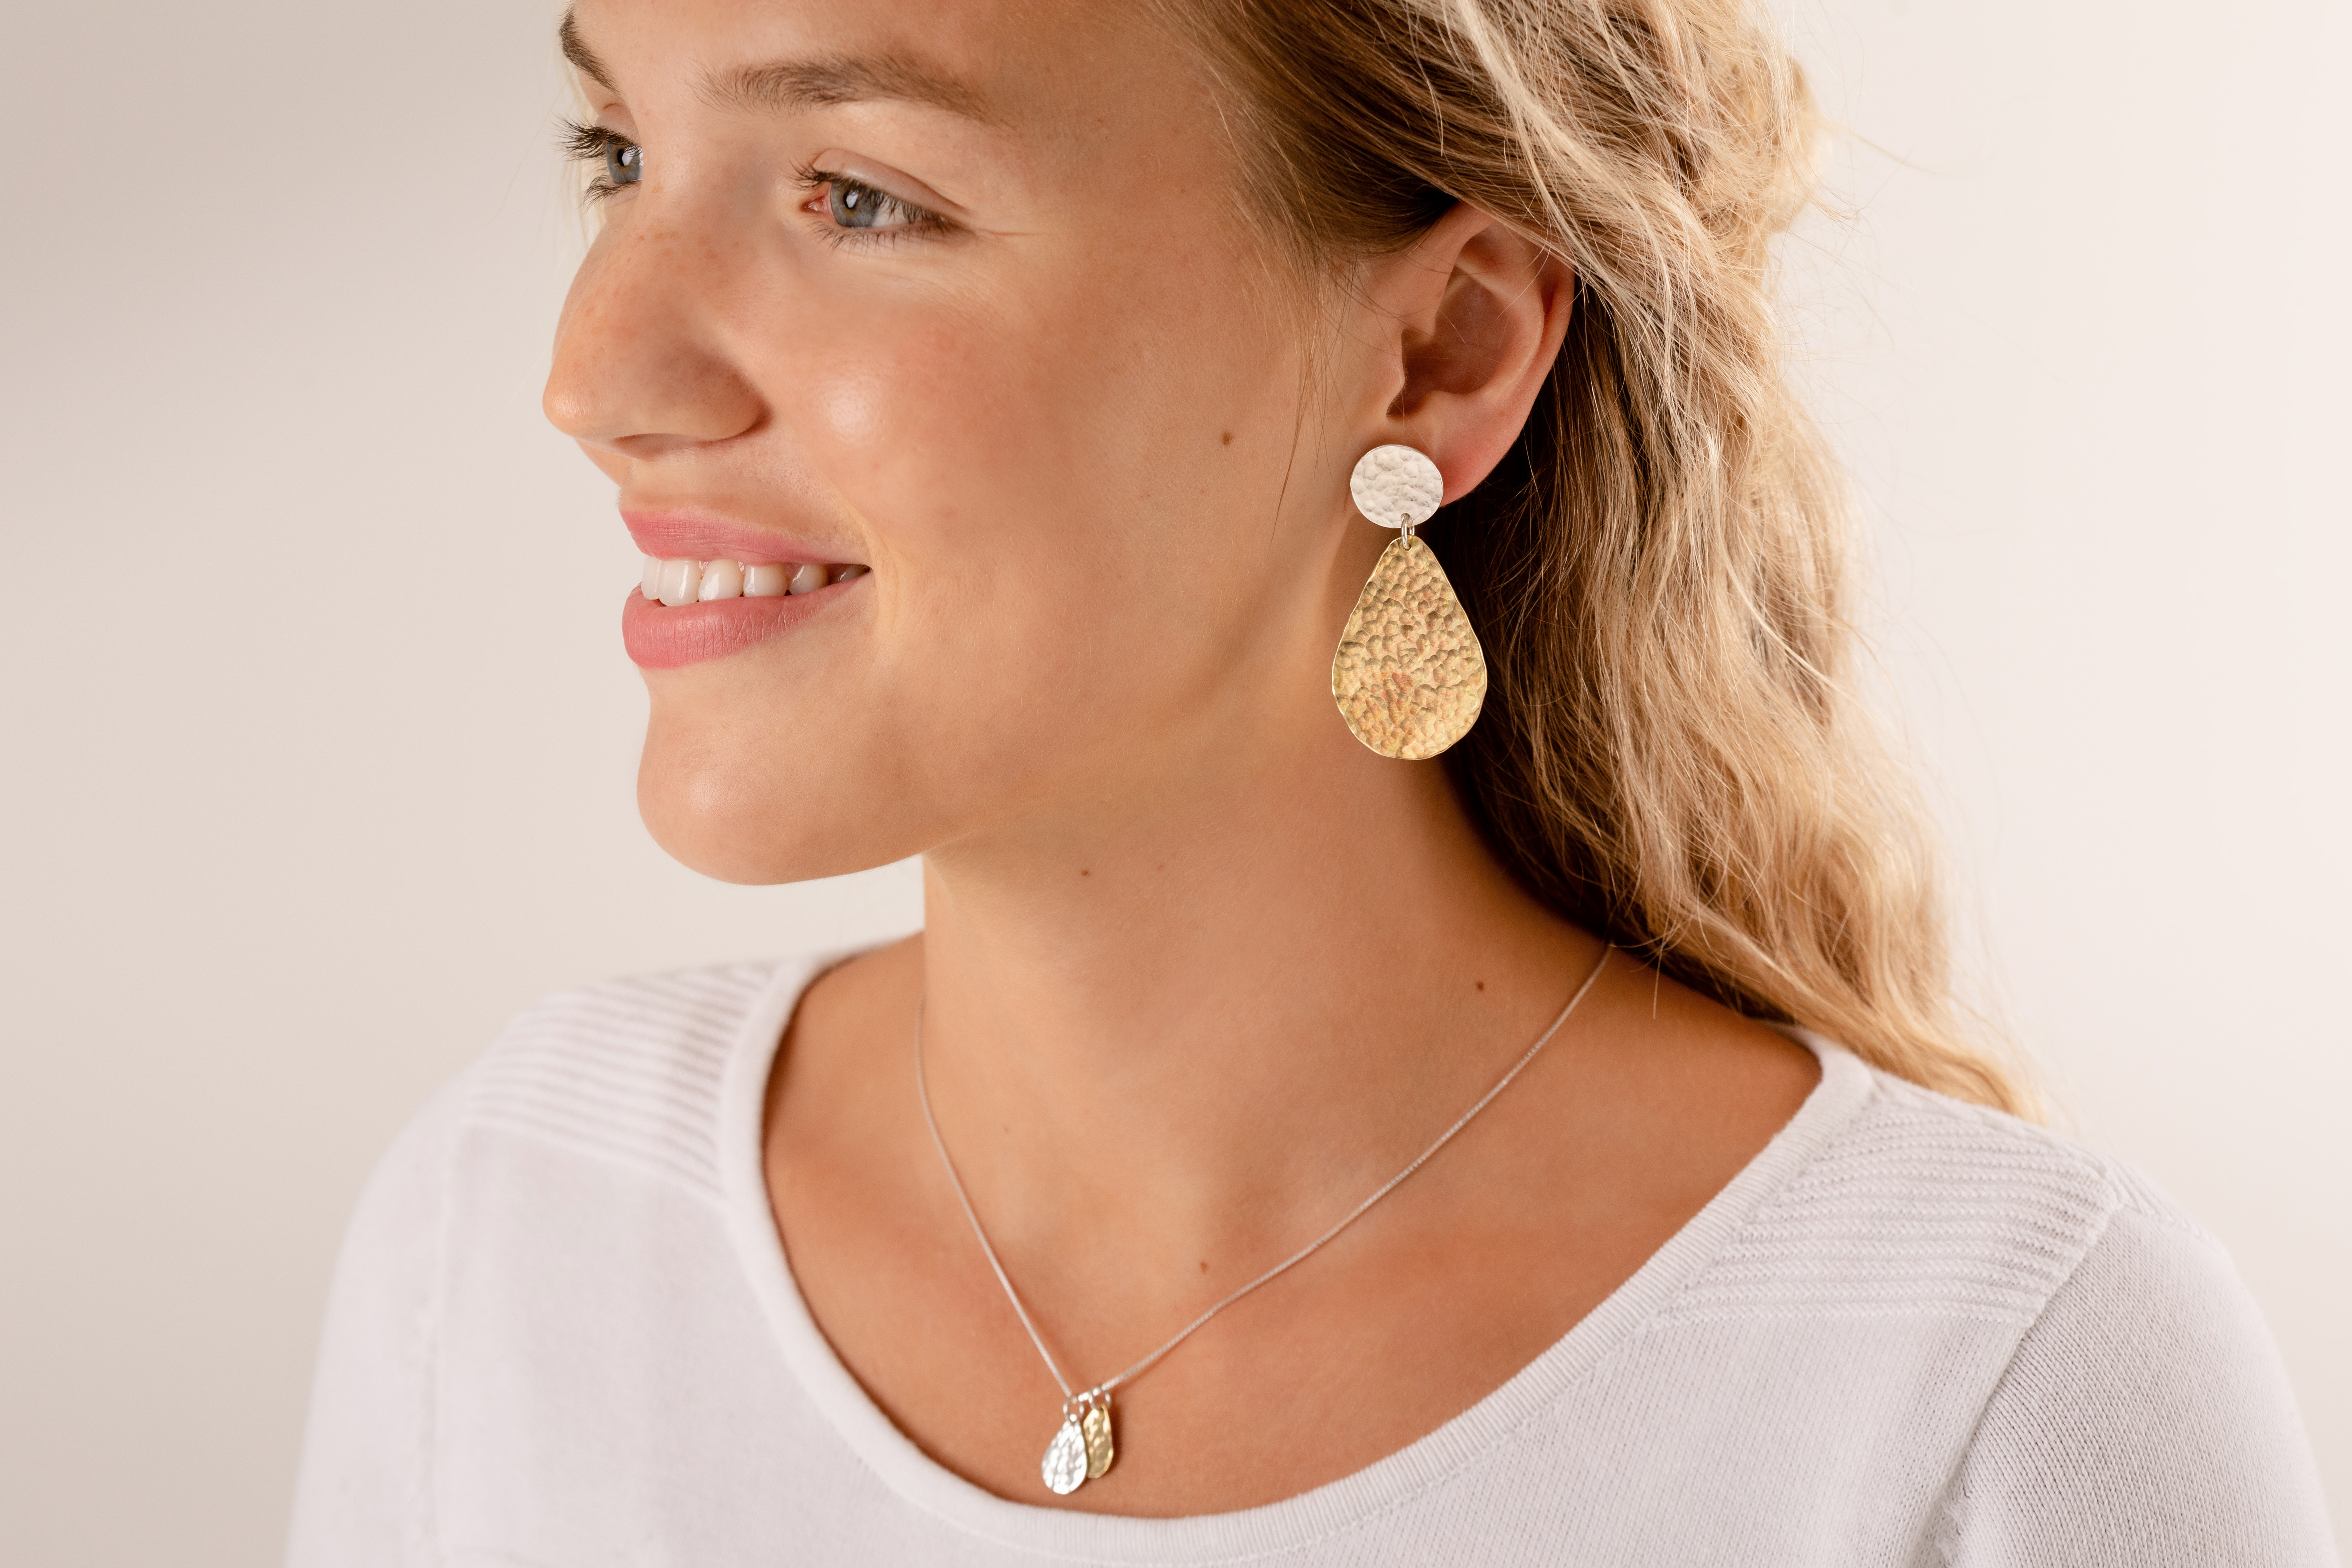 Mixed metal dainty teardrop pendant and statement earrings